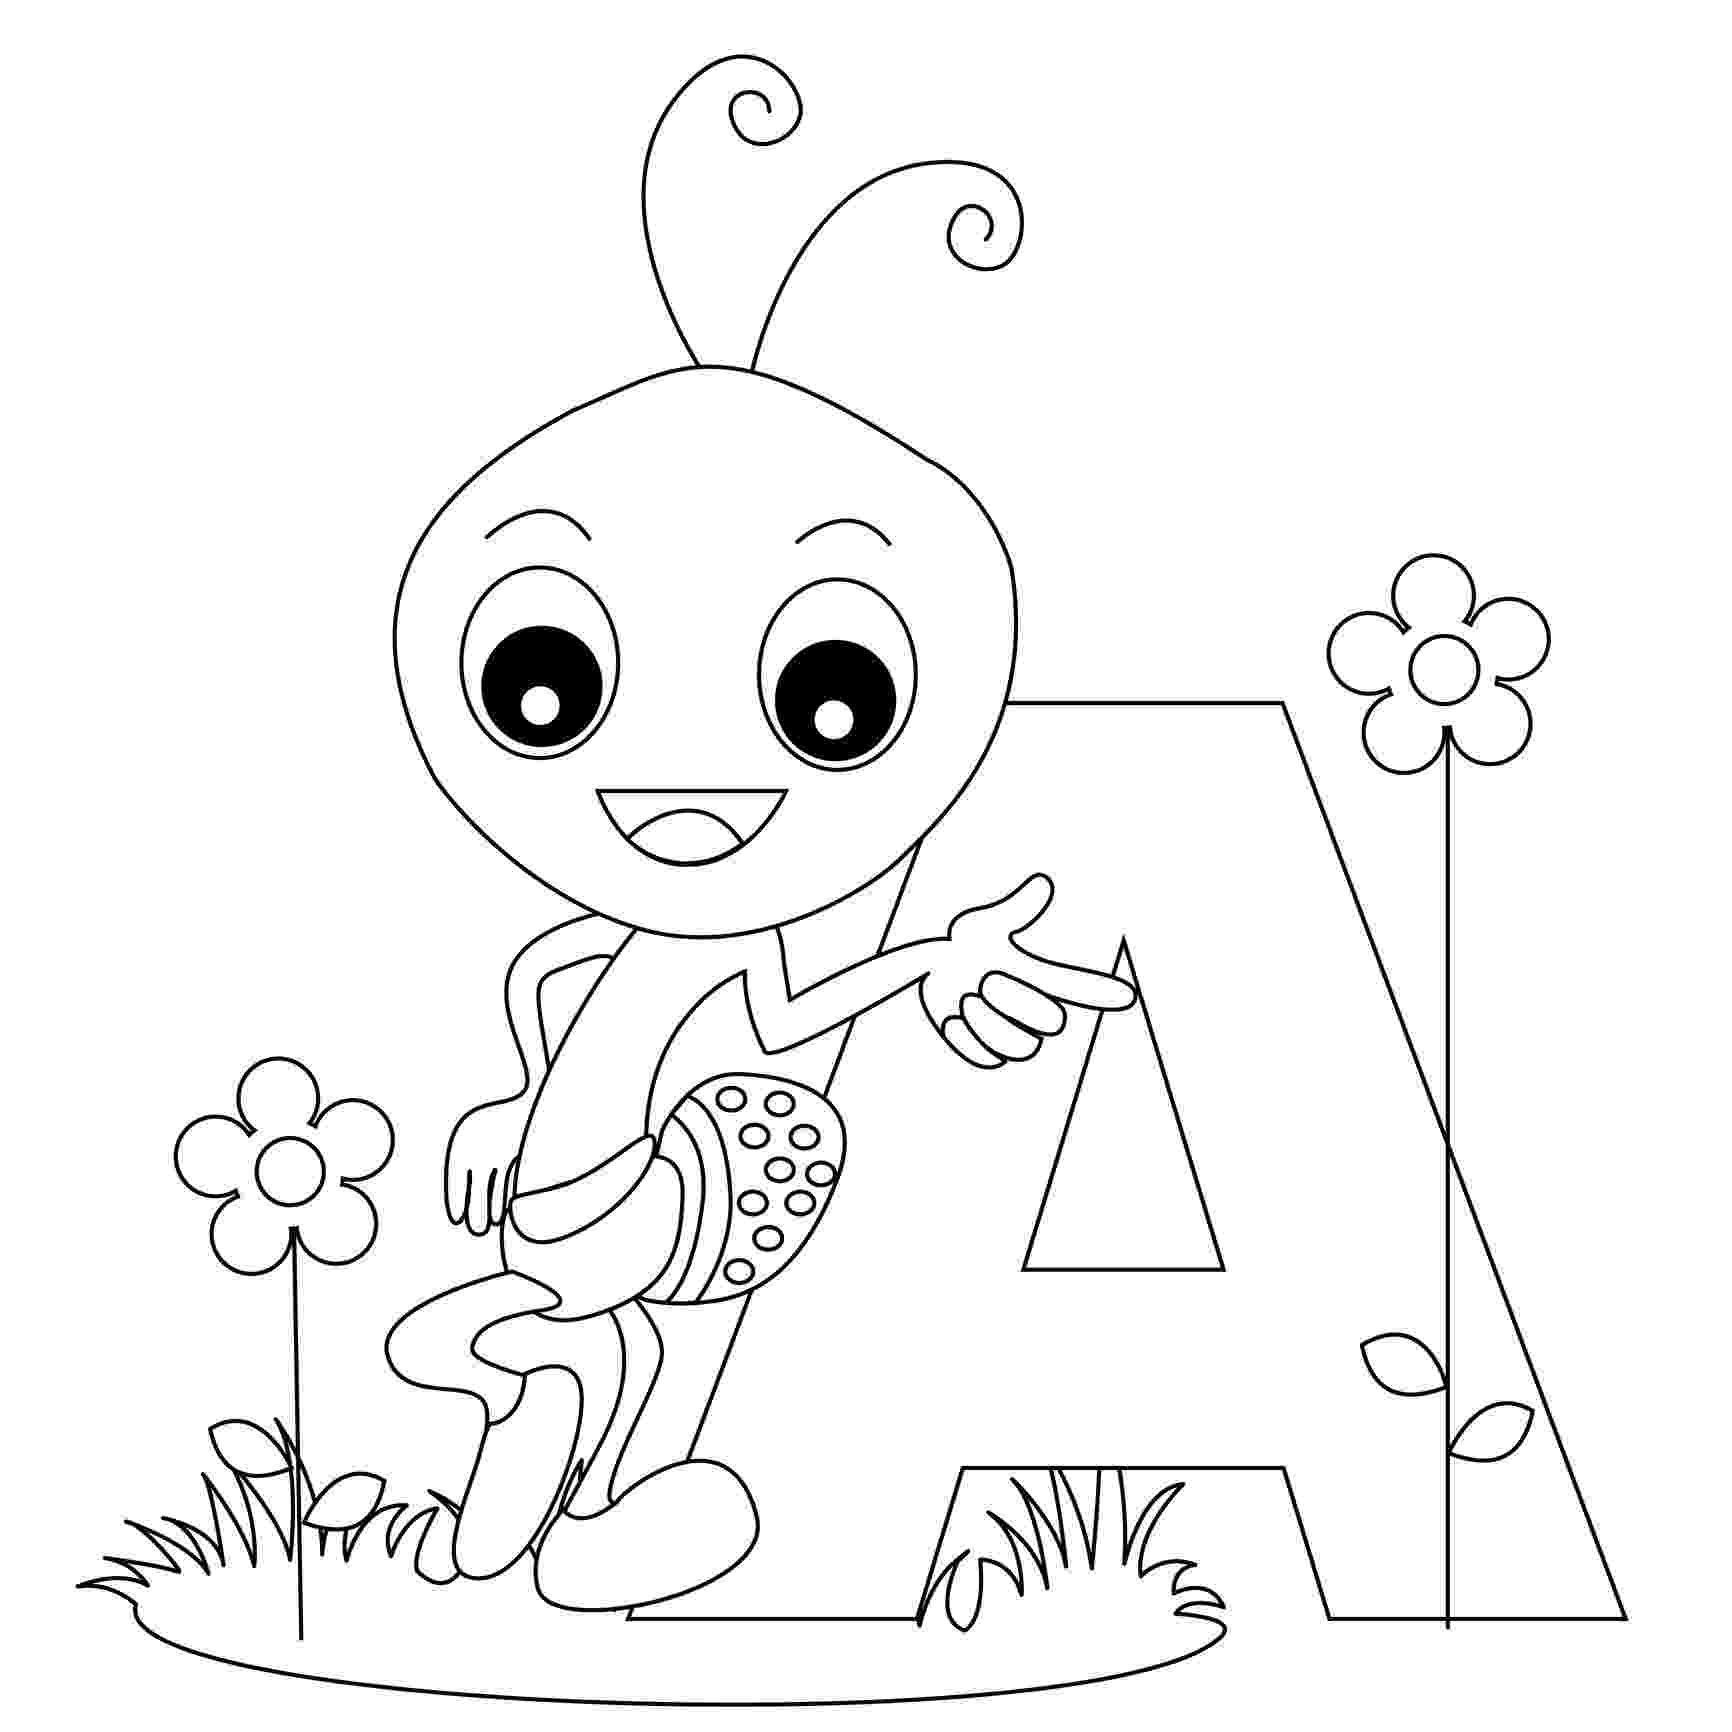 free alphabet coloring pages free printable alphabet coloring pages for kids best free pages alphabet coloring